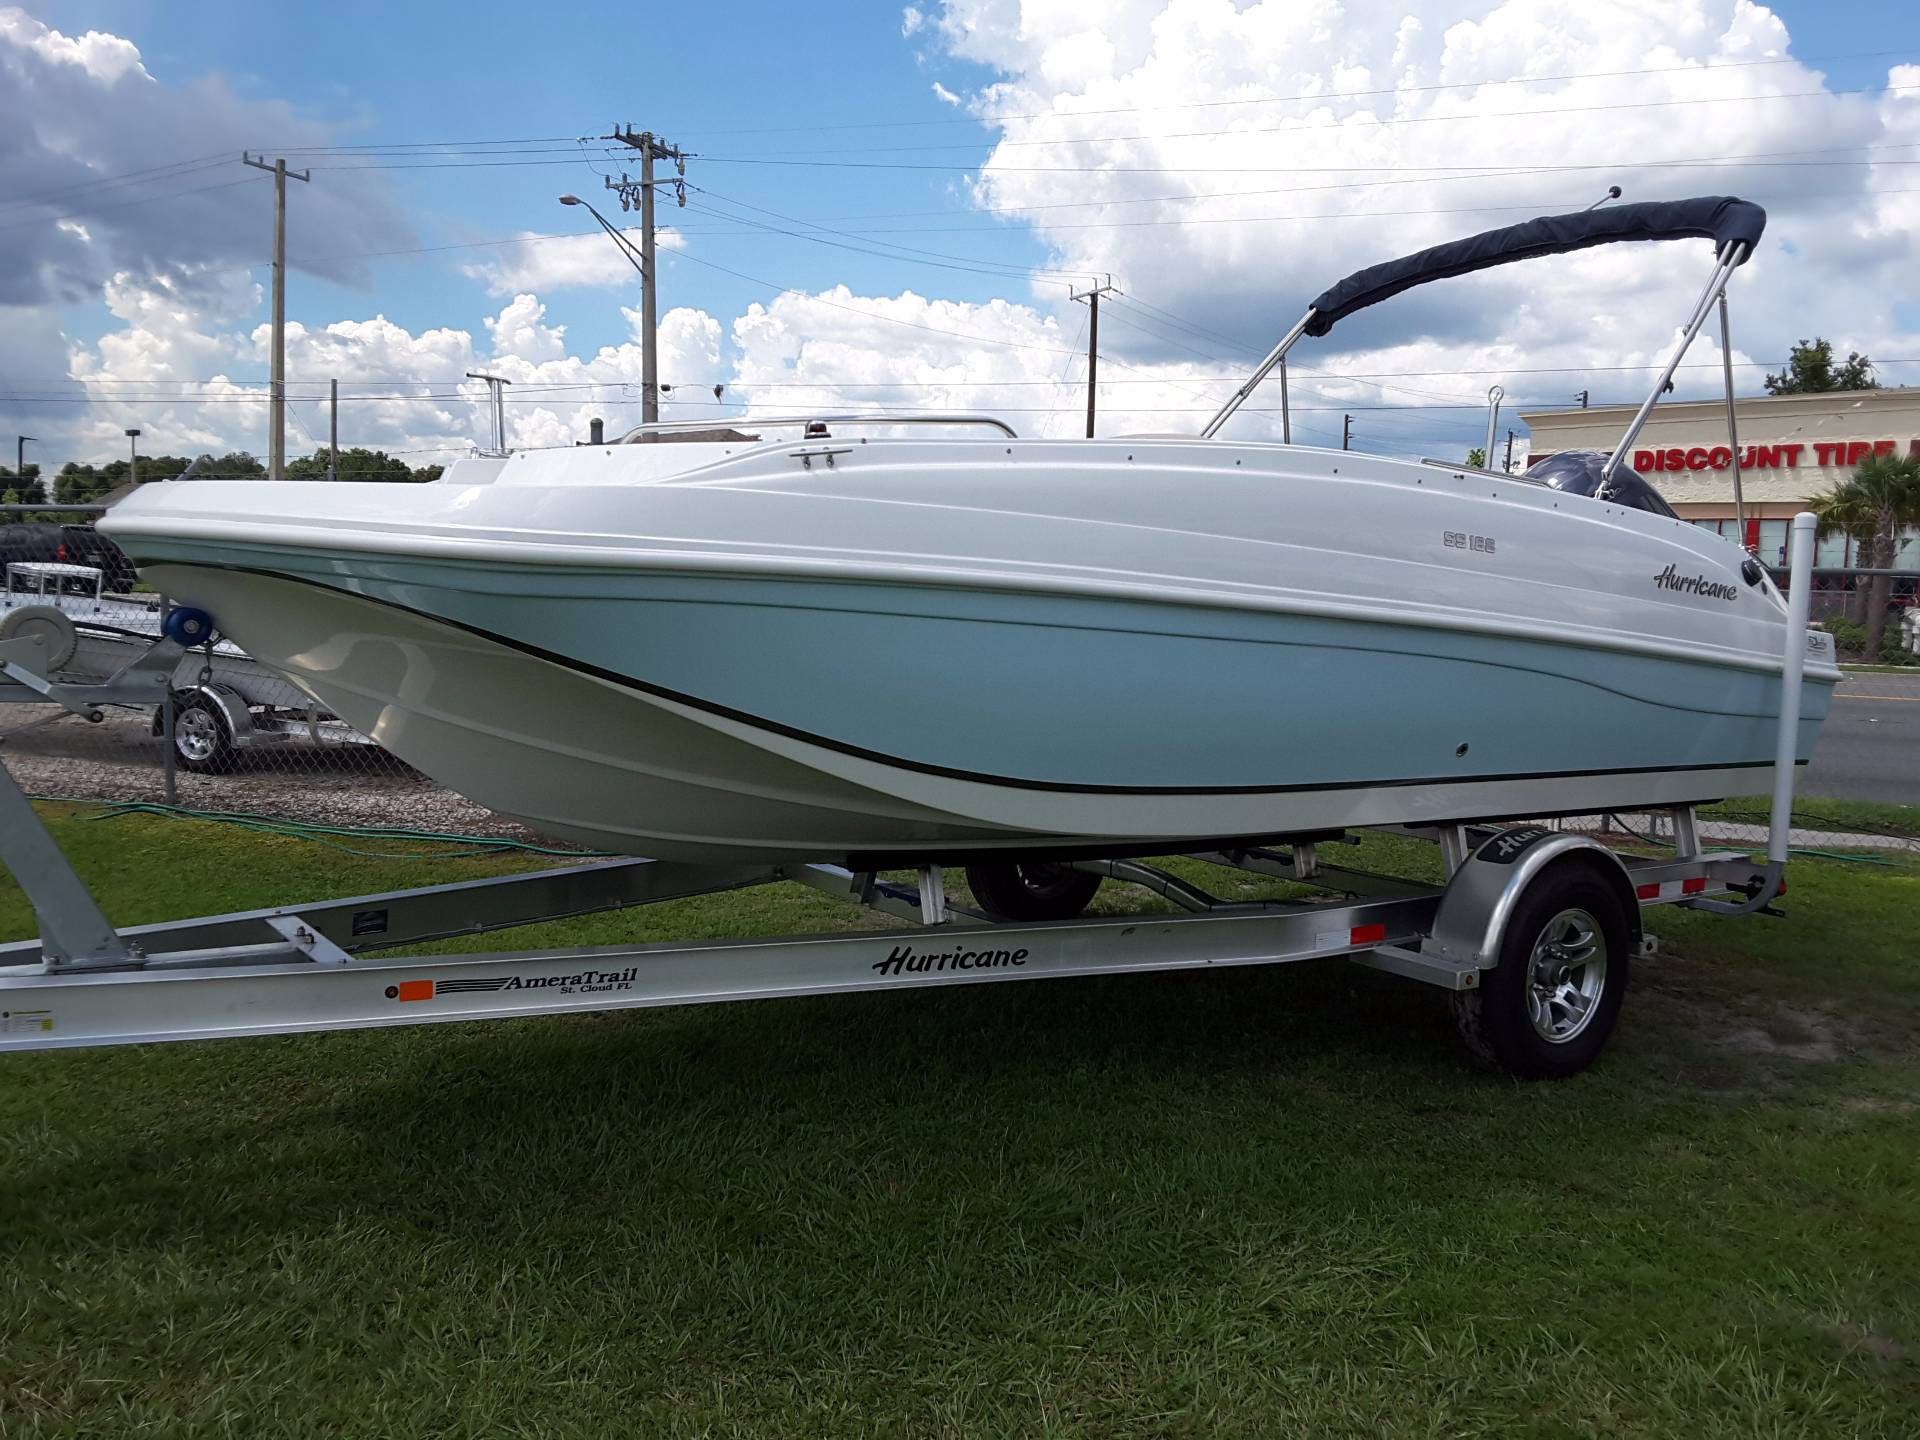 Hurricane sundeck sport 188 ob boats for sale for Hurricane sundeck for sale